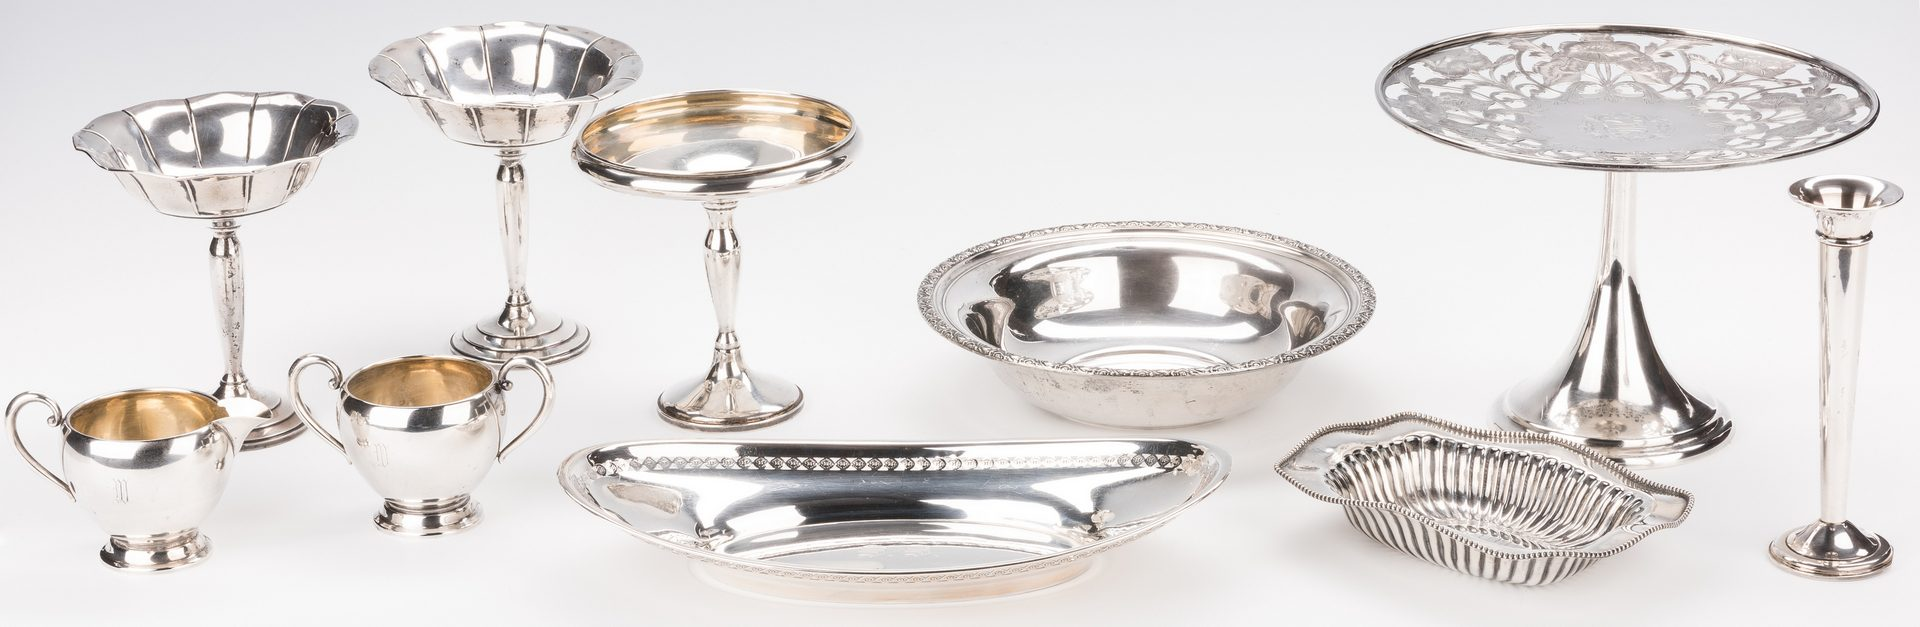 Lot 582: 10 Assorted Sterling Table Items